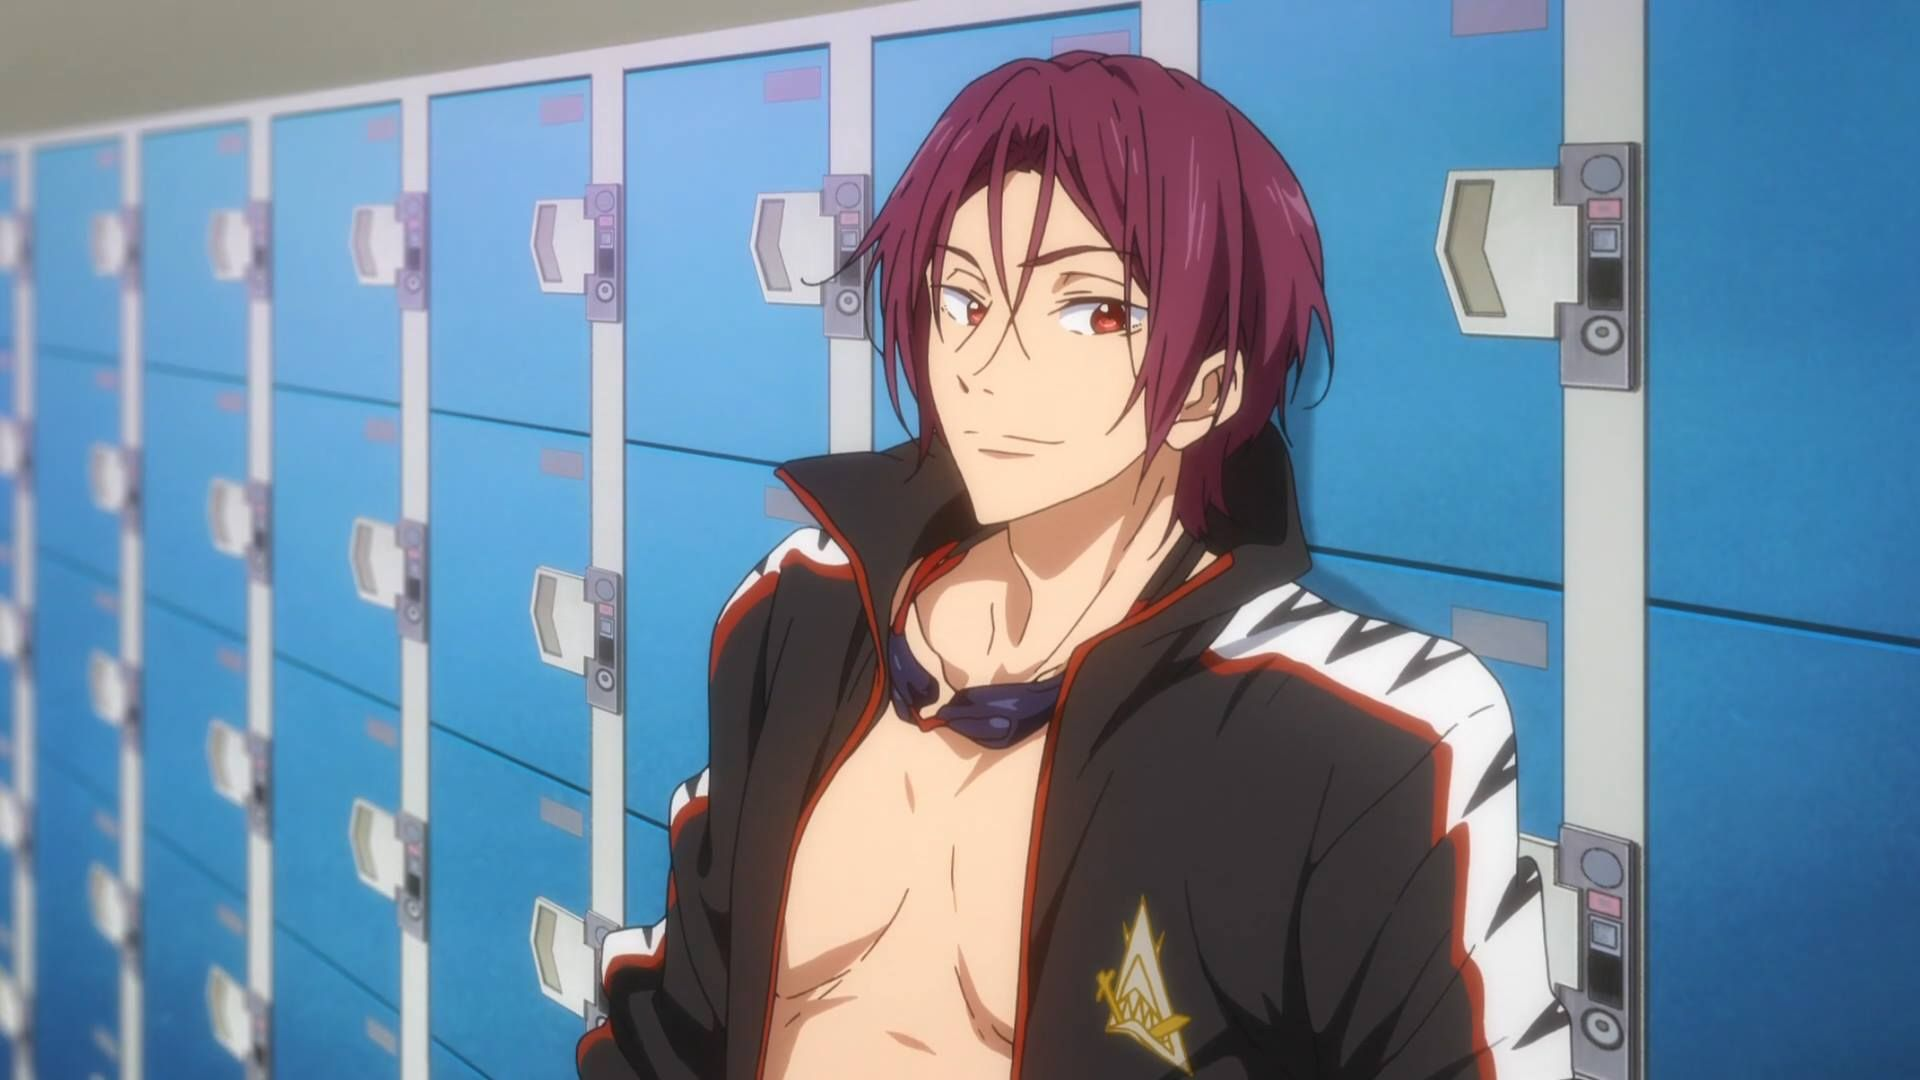 Free Screencap Free Eternal Summer Rin Free Anime Free Eternal Summer Rin matsuoka (松岡 凛 matsuoka rin) is one of the main characters of the anime series free! free eternal summer rin free anime